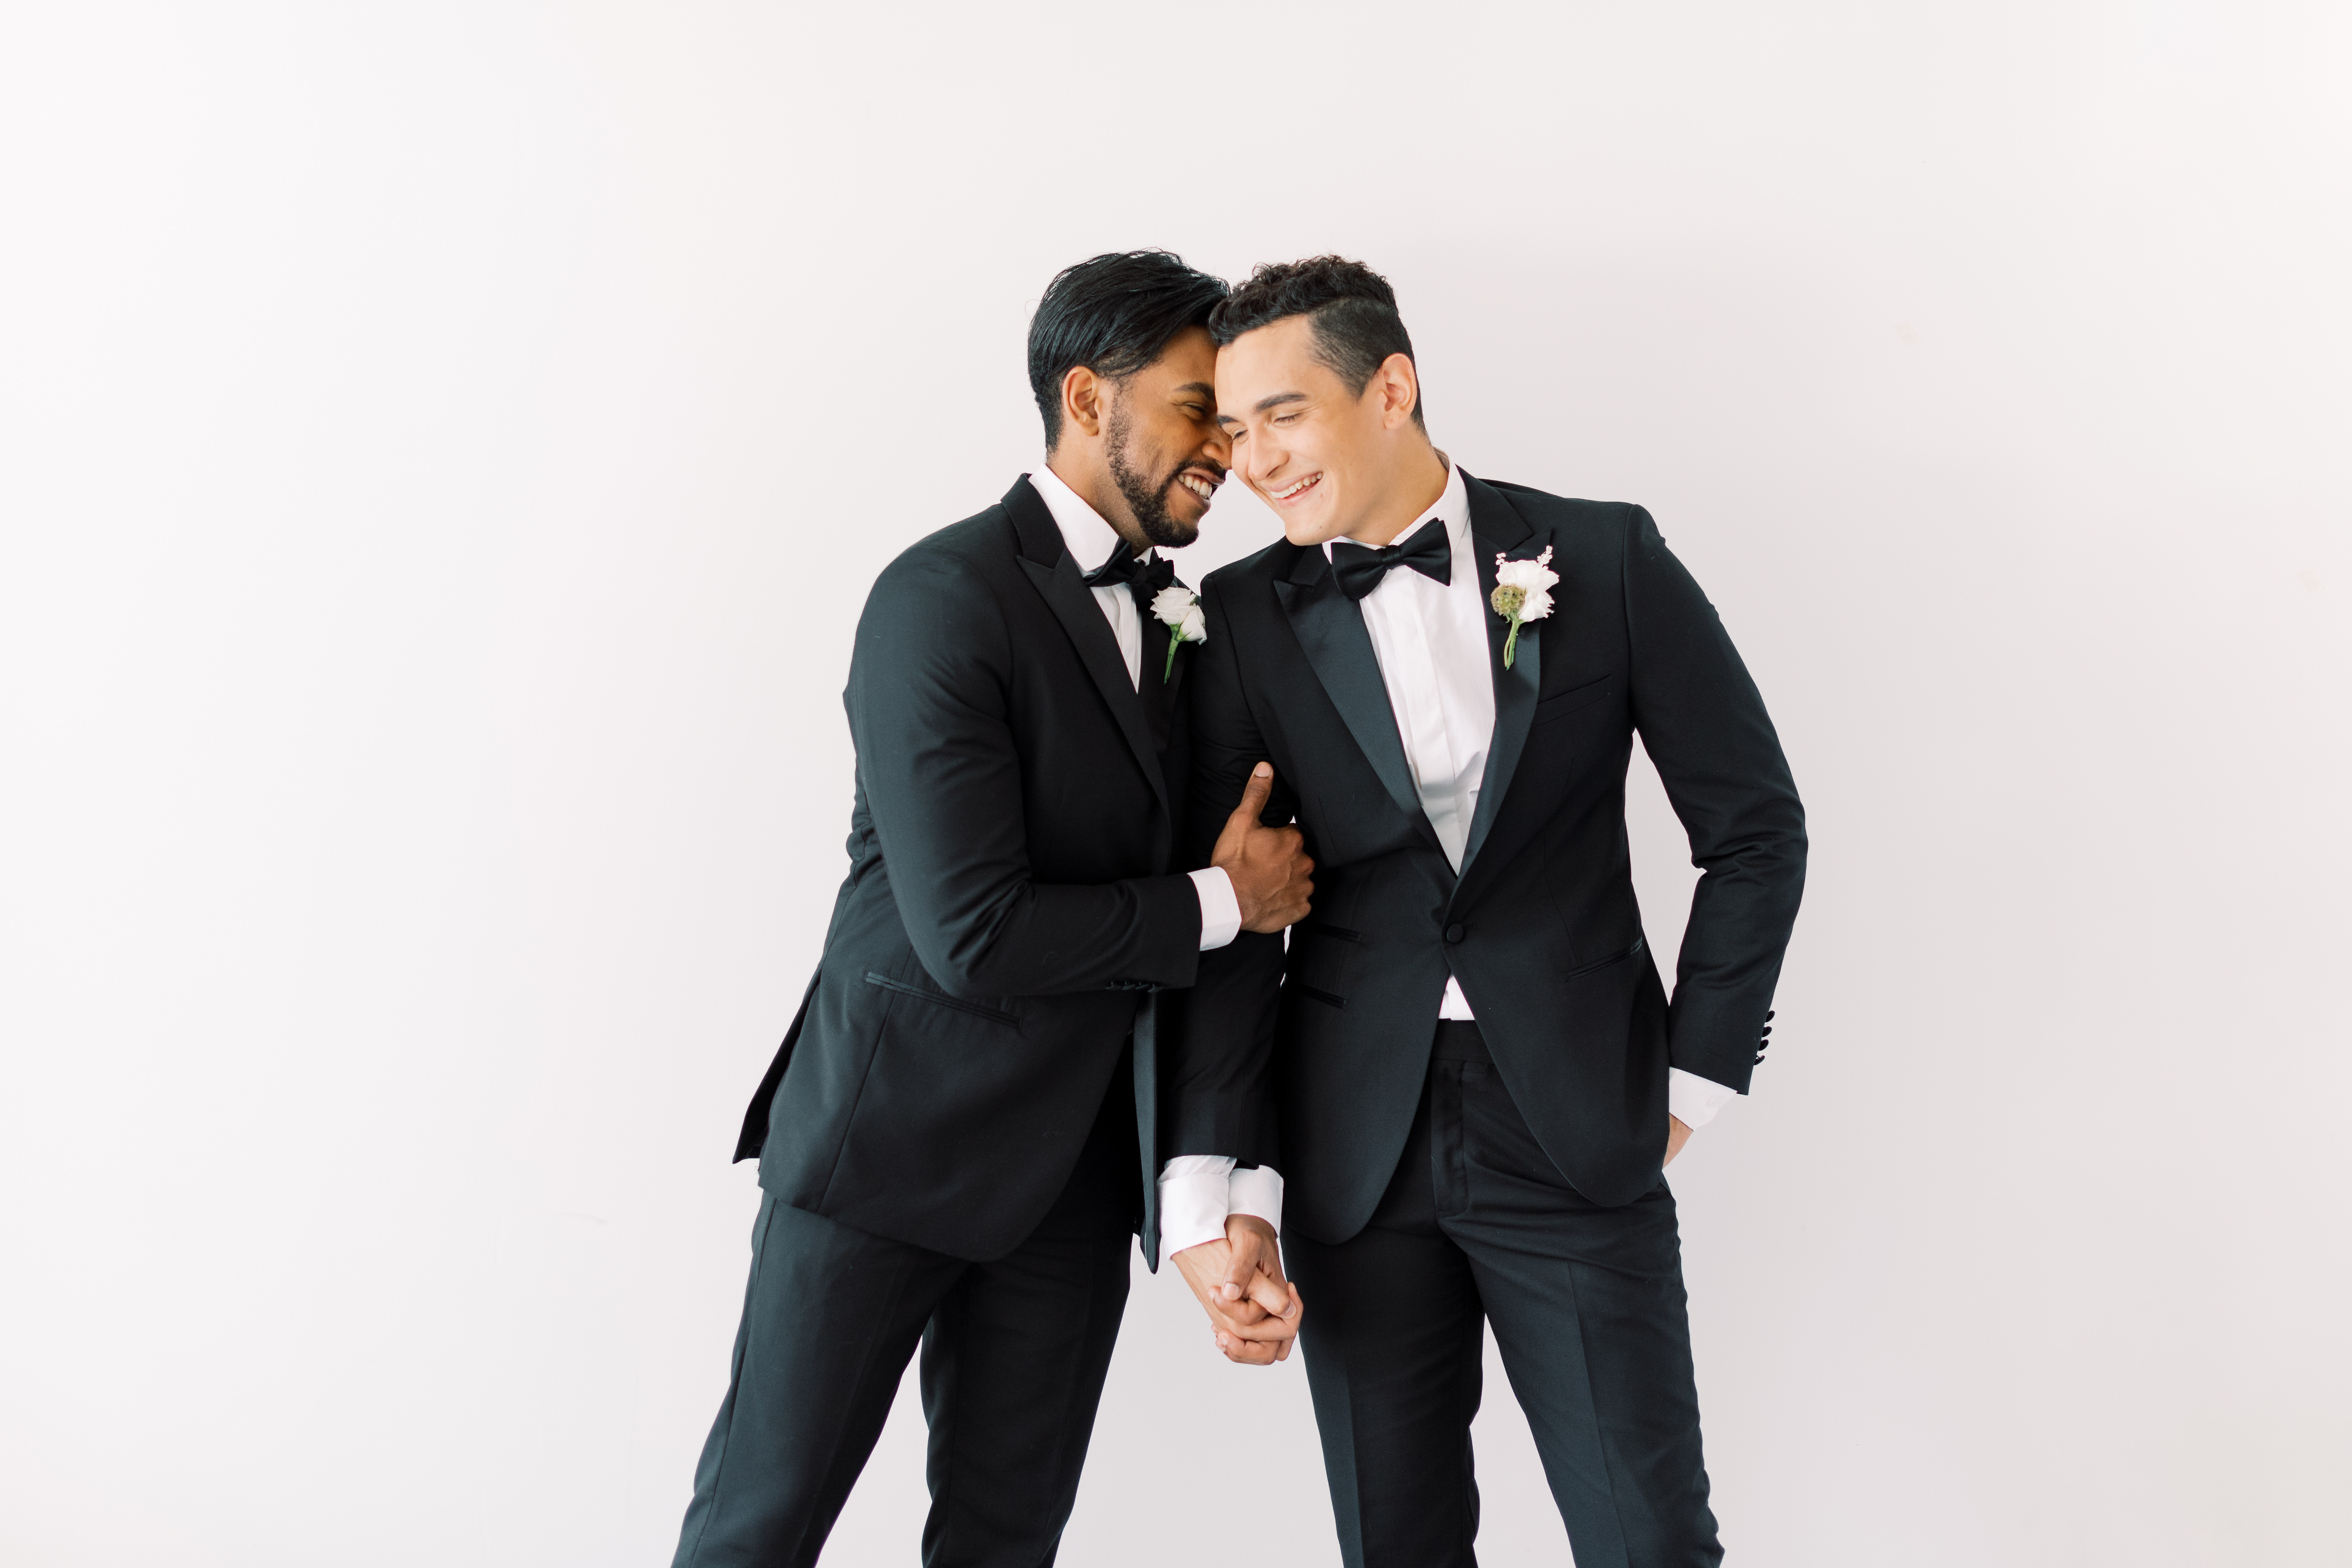 Stylish Grooms Wedding Suits